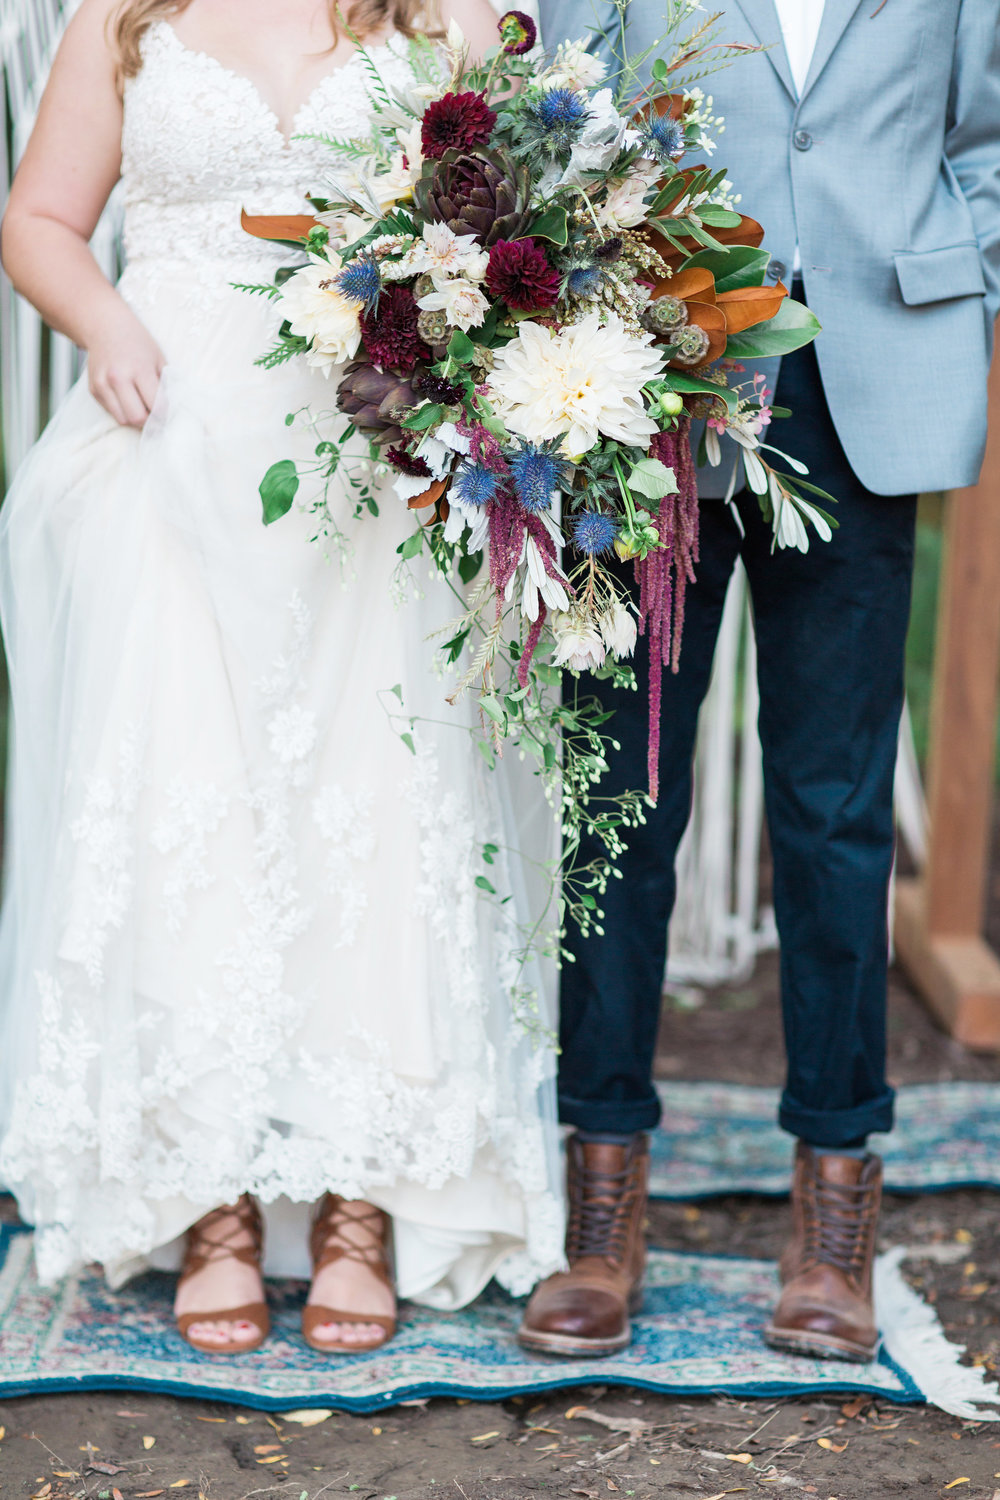 country-lane-lodge-adel-iowa-wedding-venue-iowa-wedding-planned-by-mostly-becky-weddings-boho-wedding-orange-purple-flowers-blue-suite-brown-boots-outdoor-ceremony-outdoor-rugs-macrame